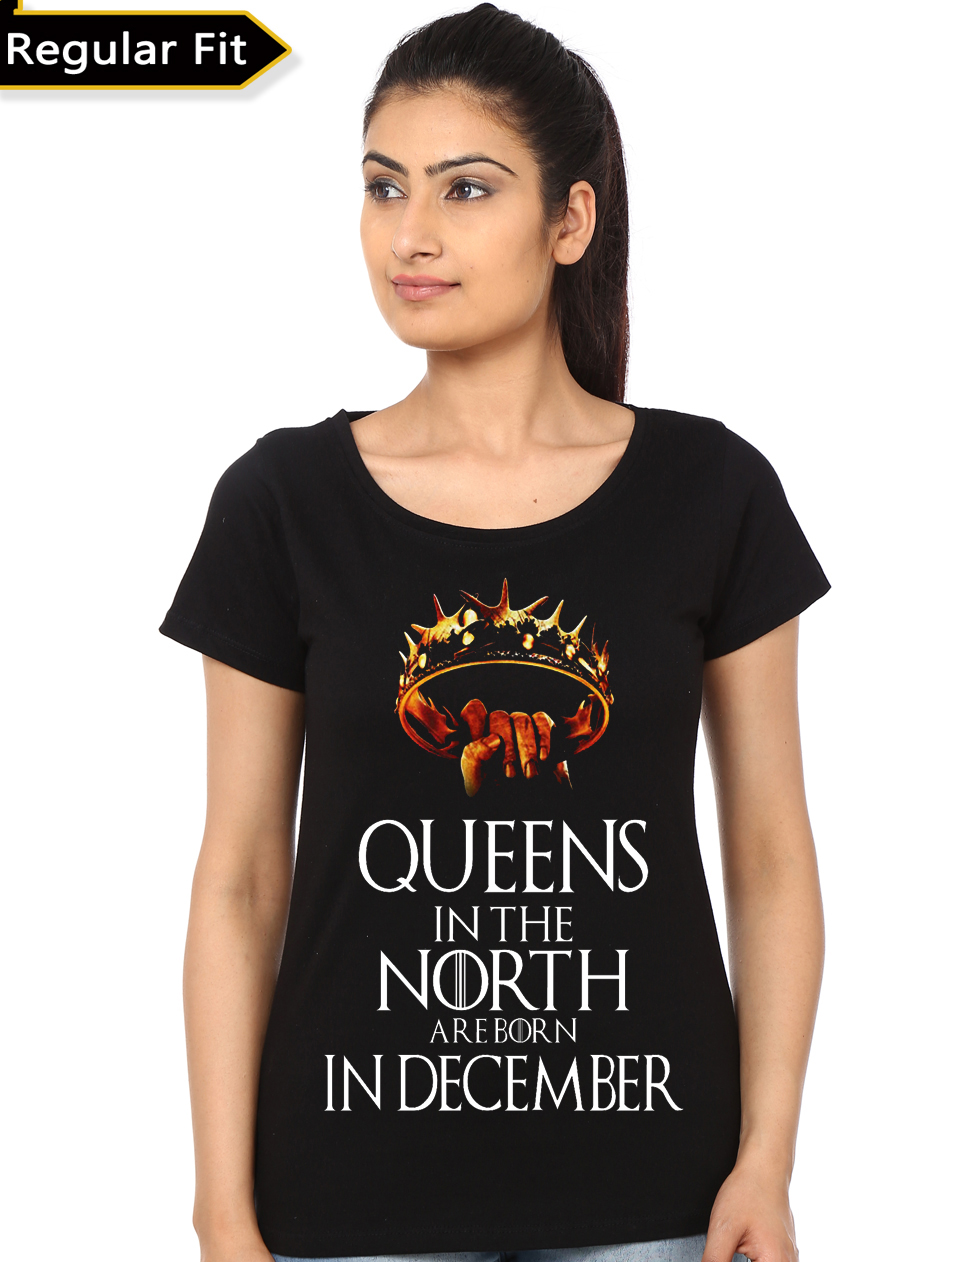 028b74d9d33 Home   Girl s Tees - Girl s Tees India   Queens Are Born In December T-Shirt